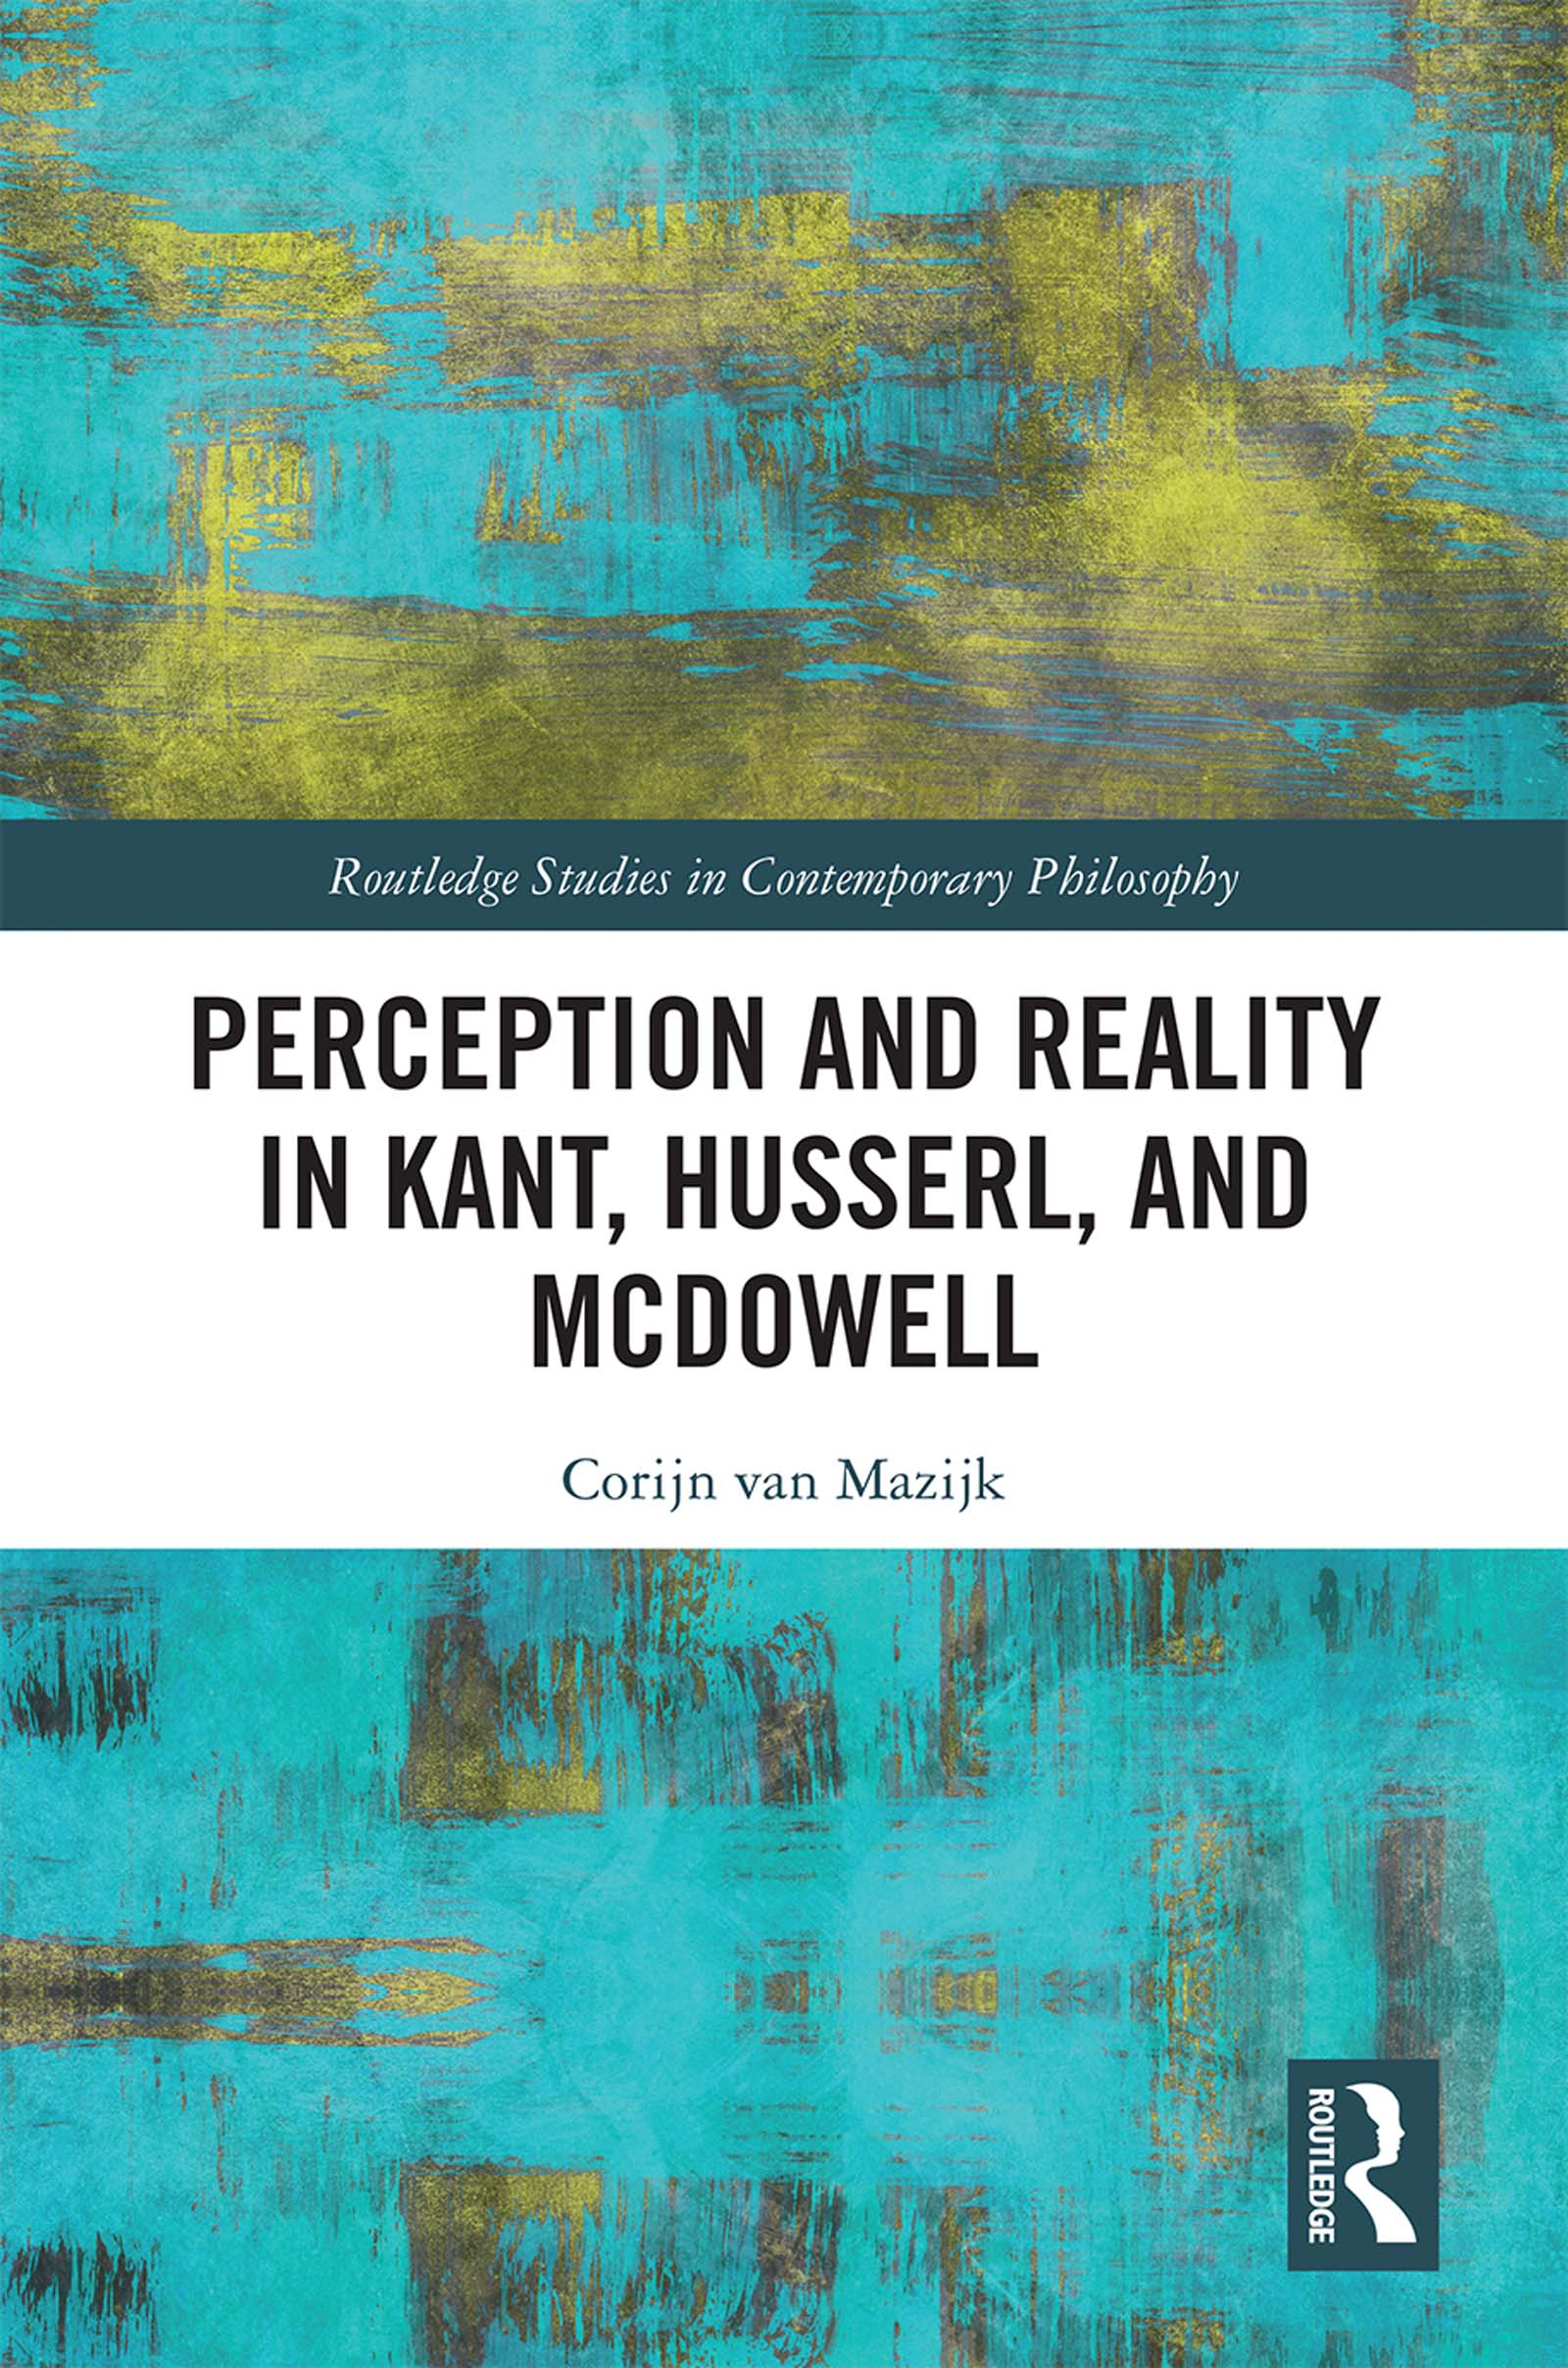 Perception and Reality in Kant, Husserl, and McDowell